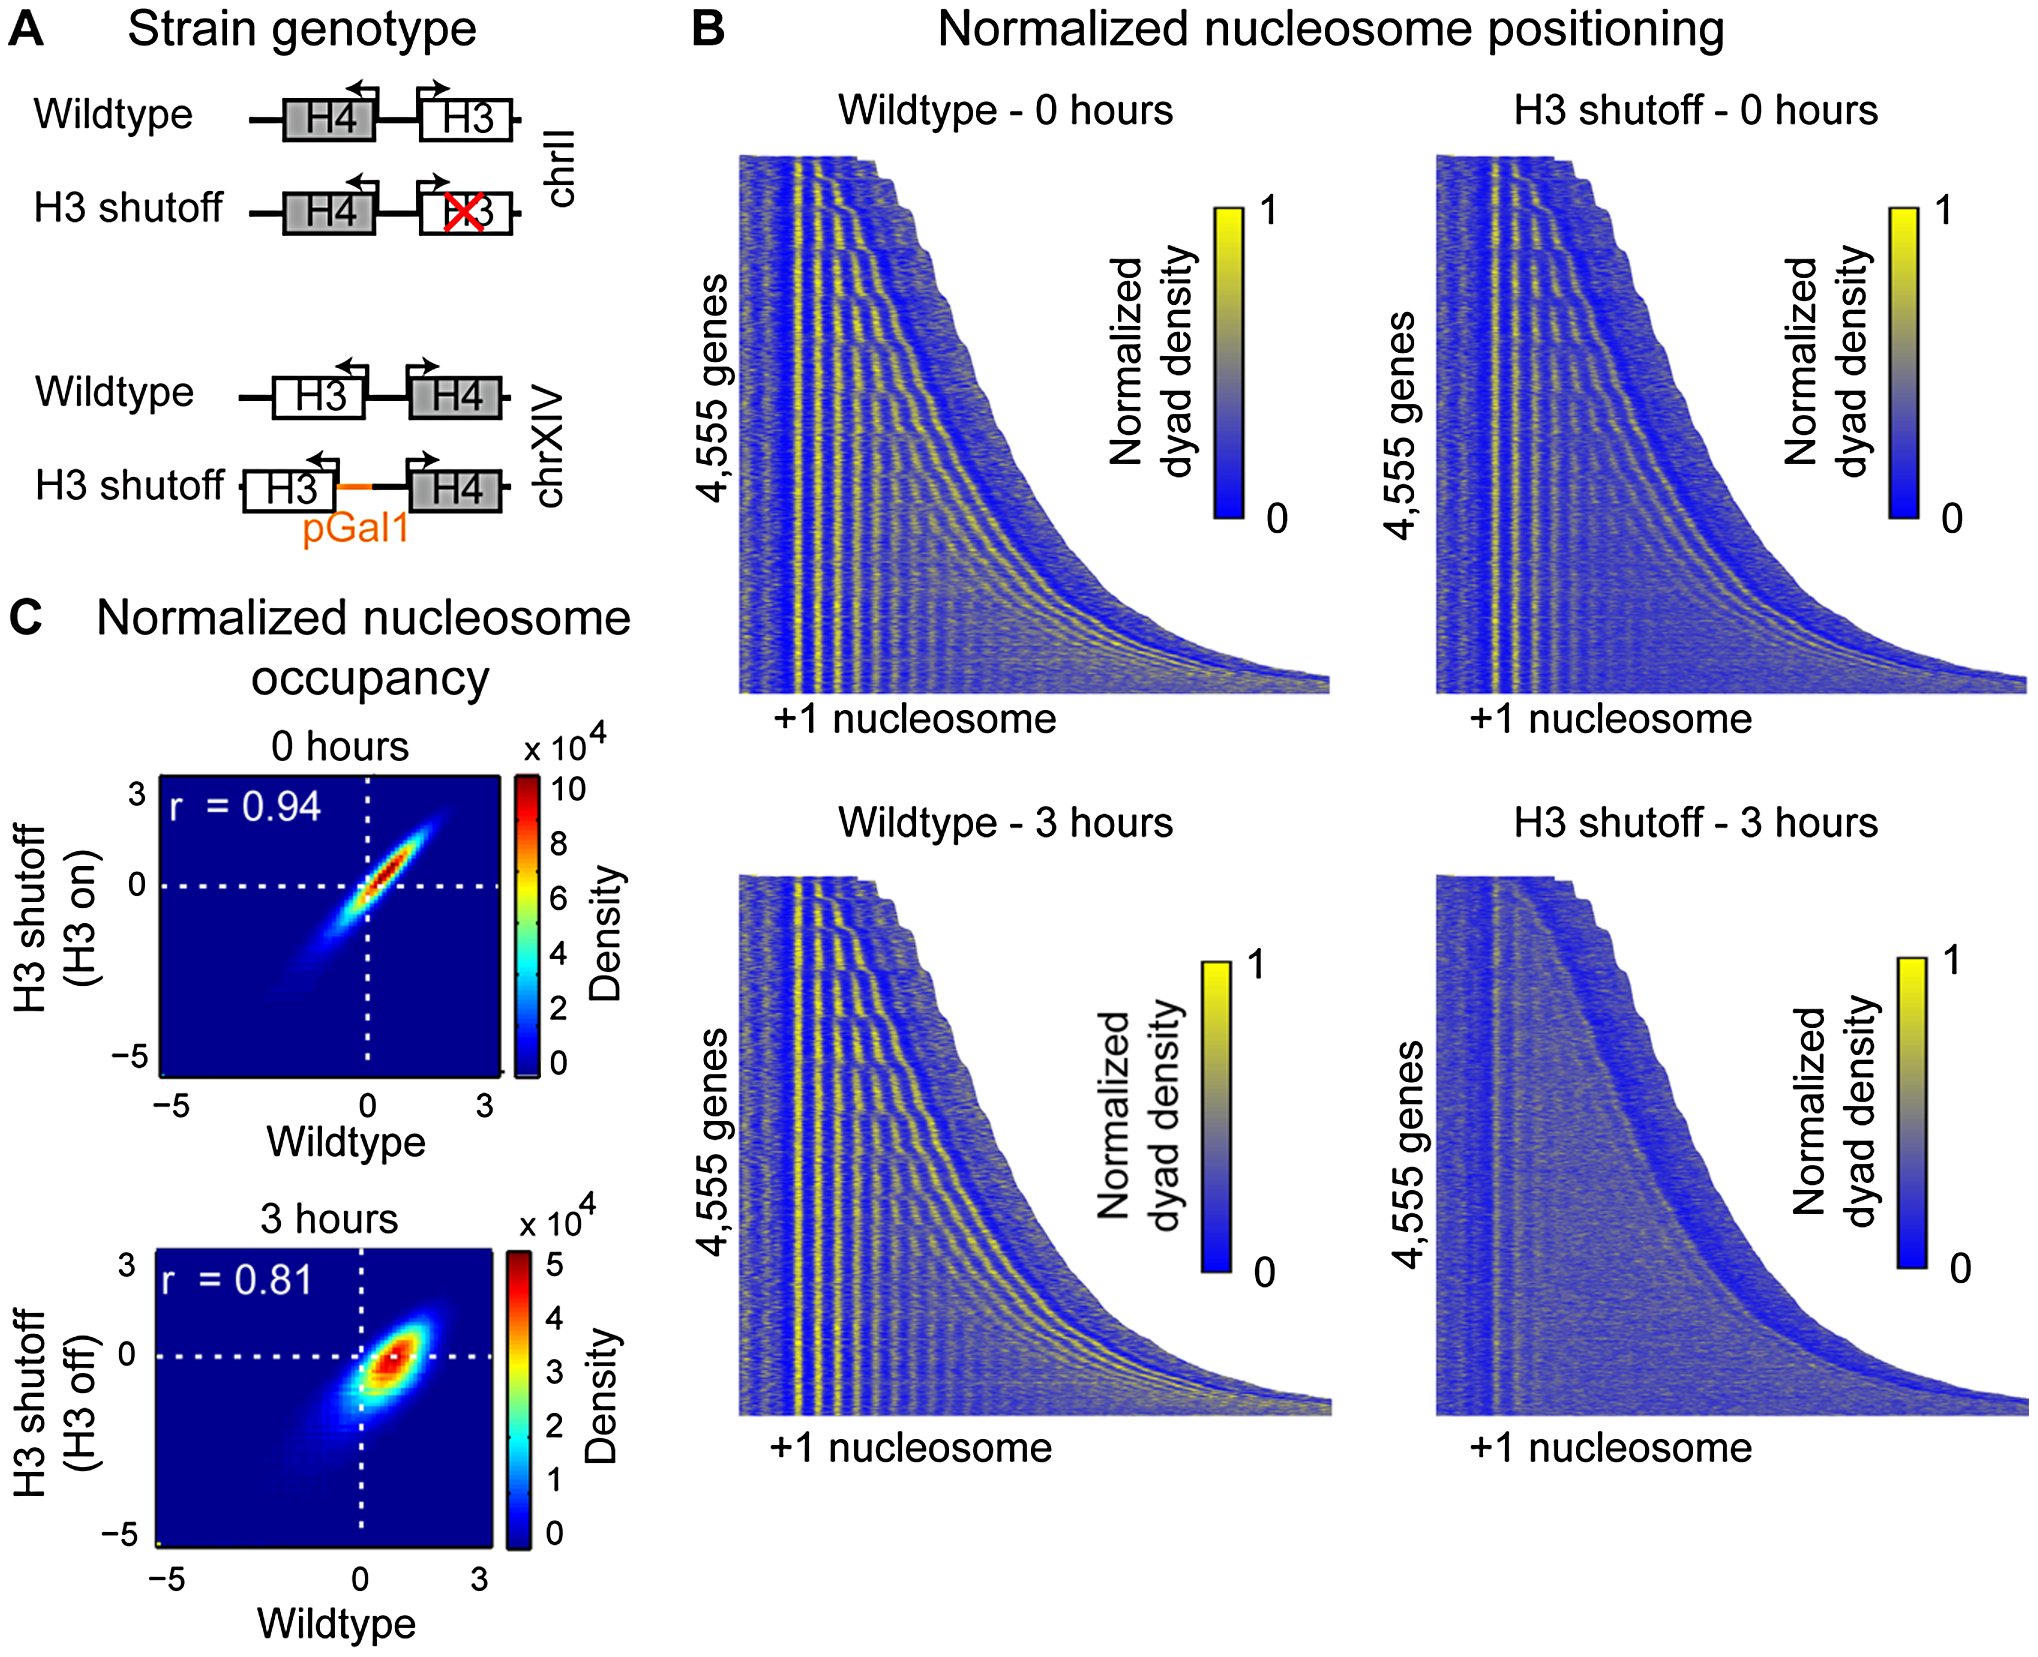 Histone H3 depletion alters nucleosome occupancy genome-wide.